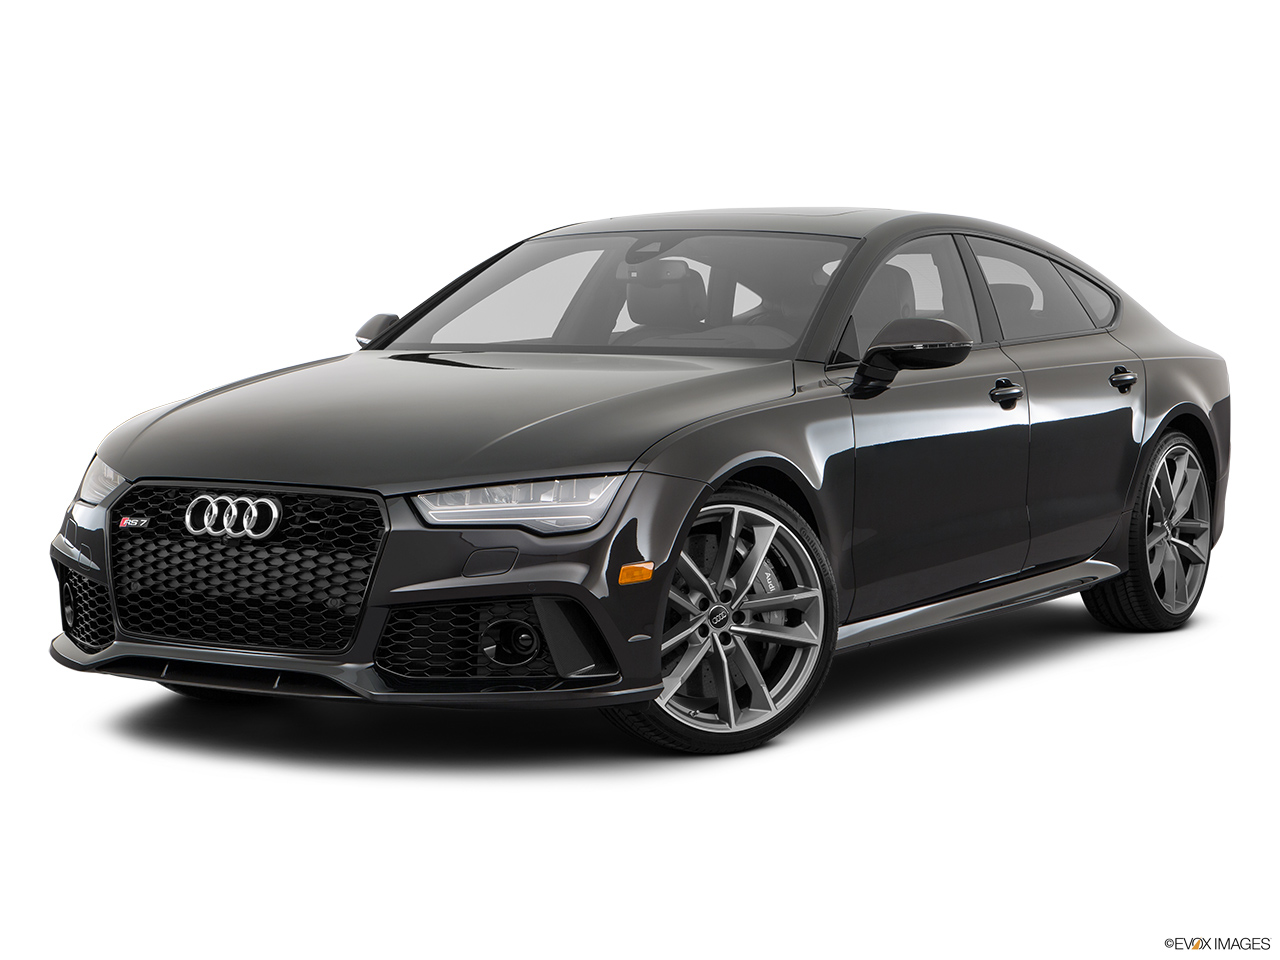 Car Pictures List For Audi RS7 2018 4.0 TFSI Performance